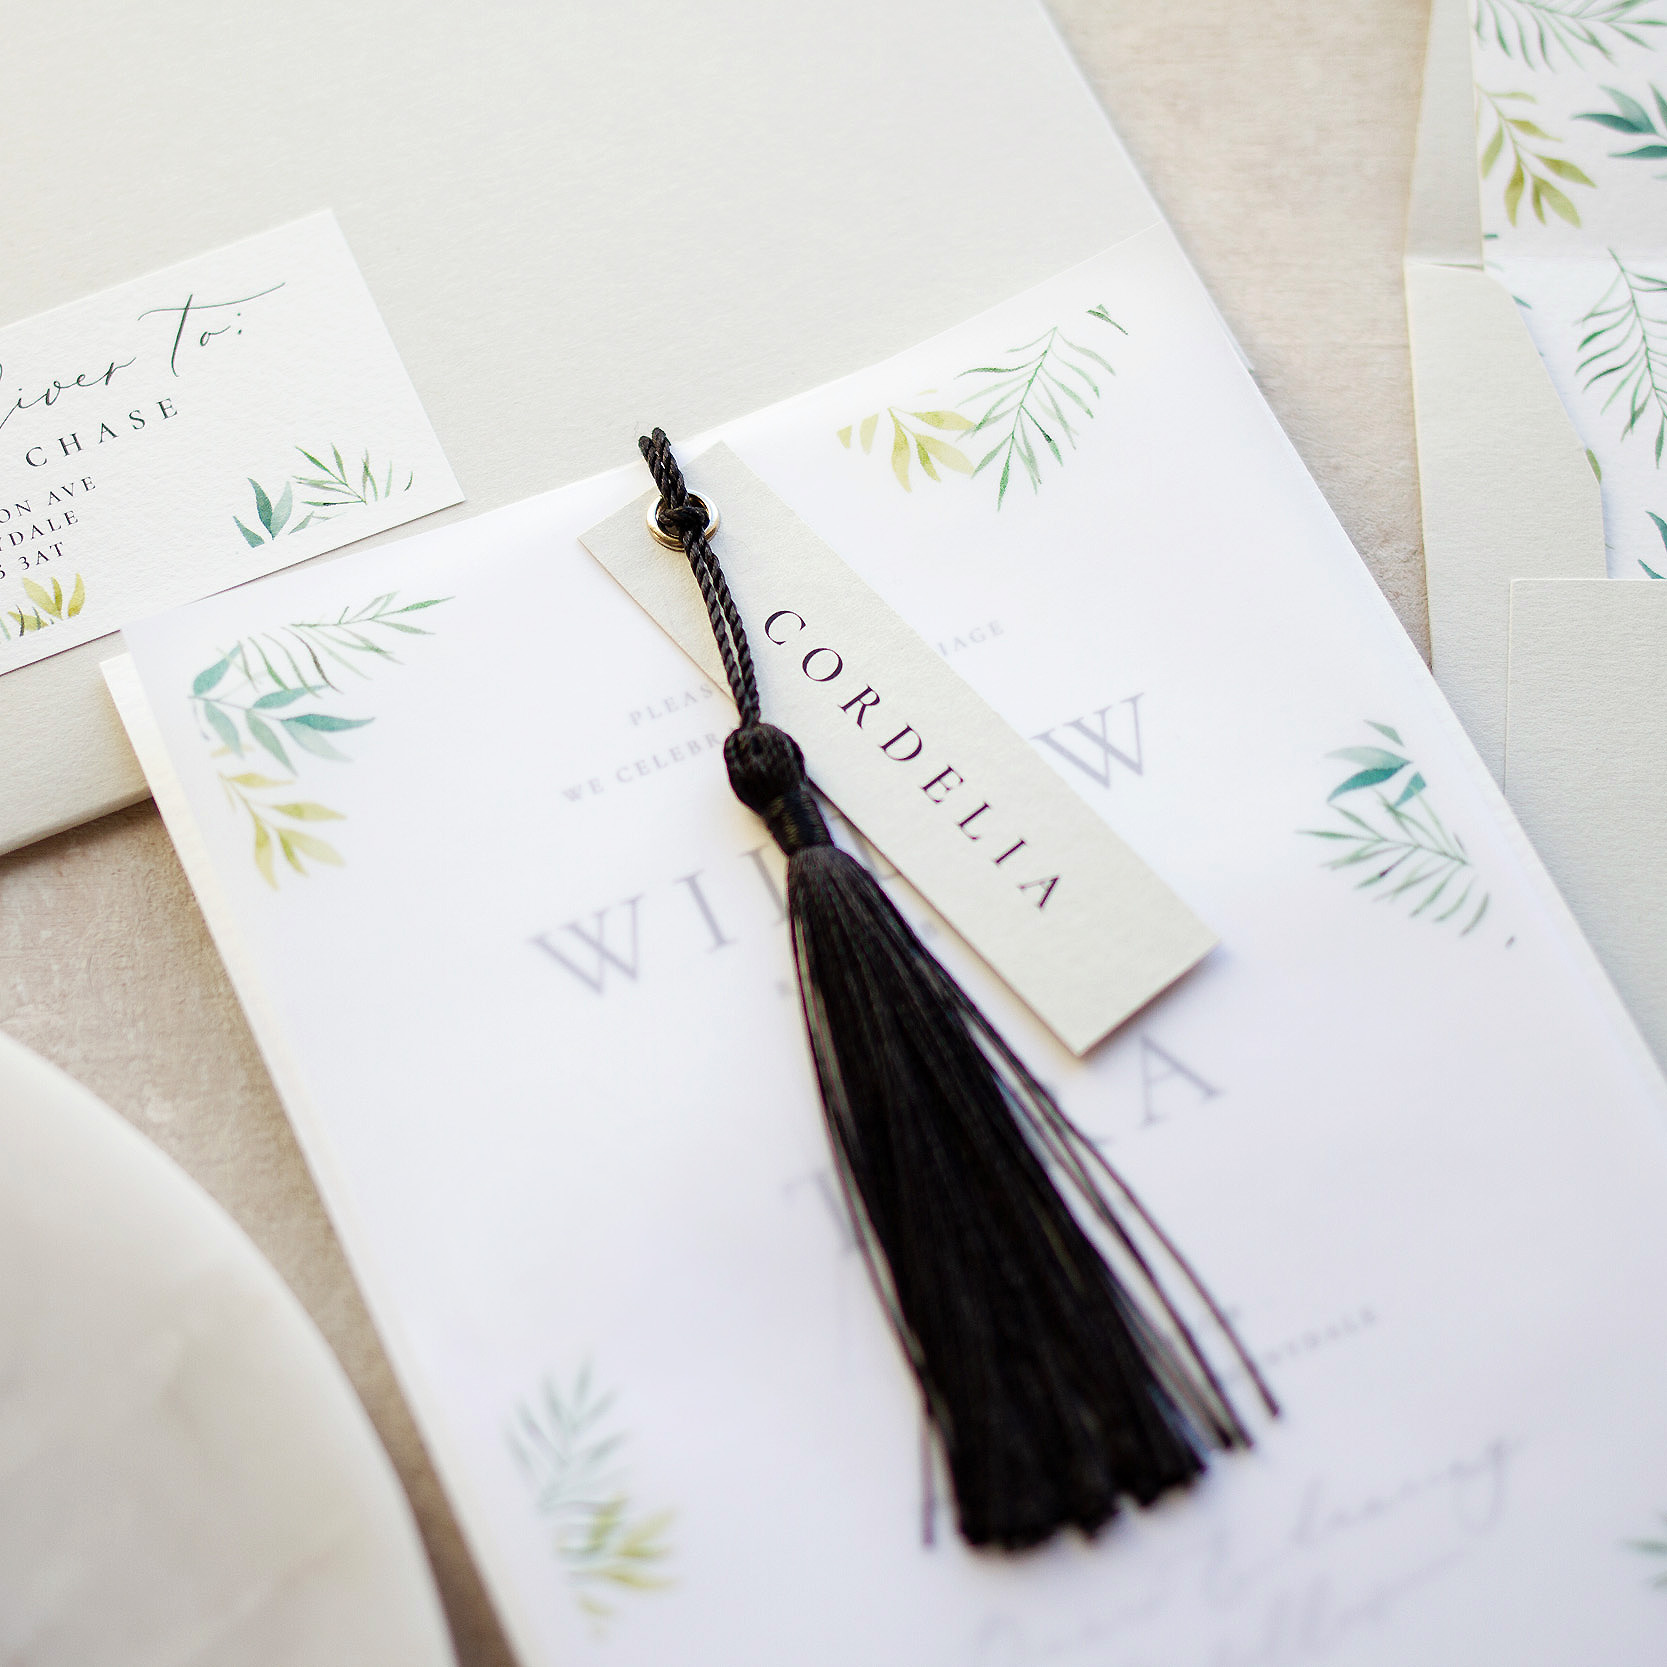 Minimal Botanical Unique Invitation with Hand Painted Details, Velum Wrap and a Black Tassel  - www.pinglepie.com.jpg